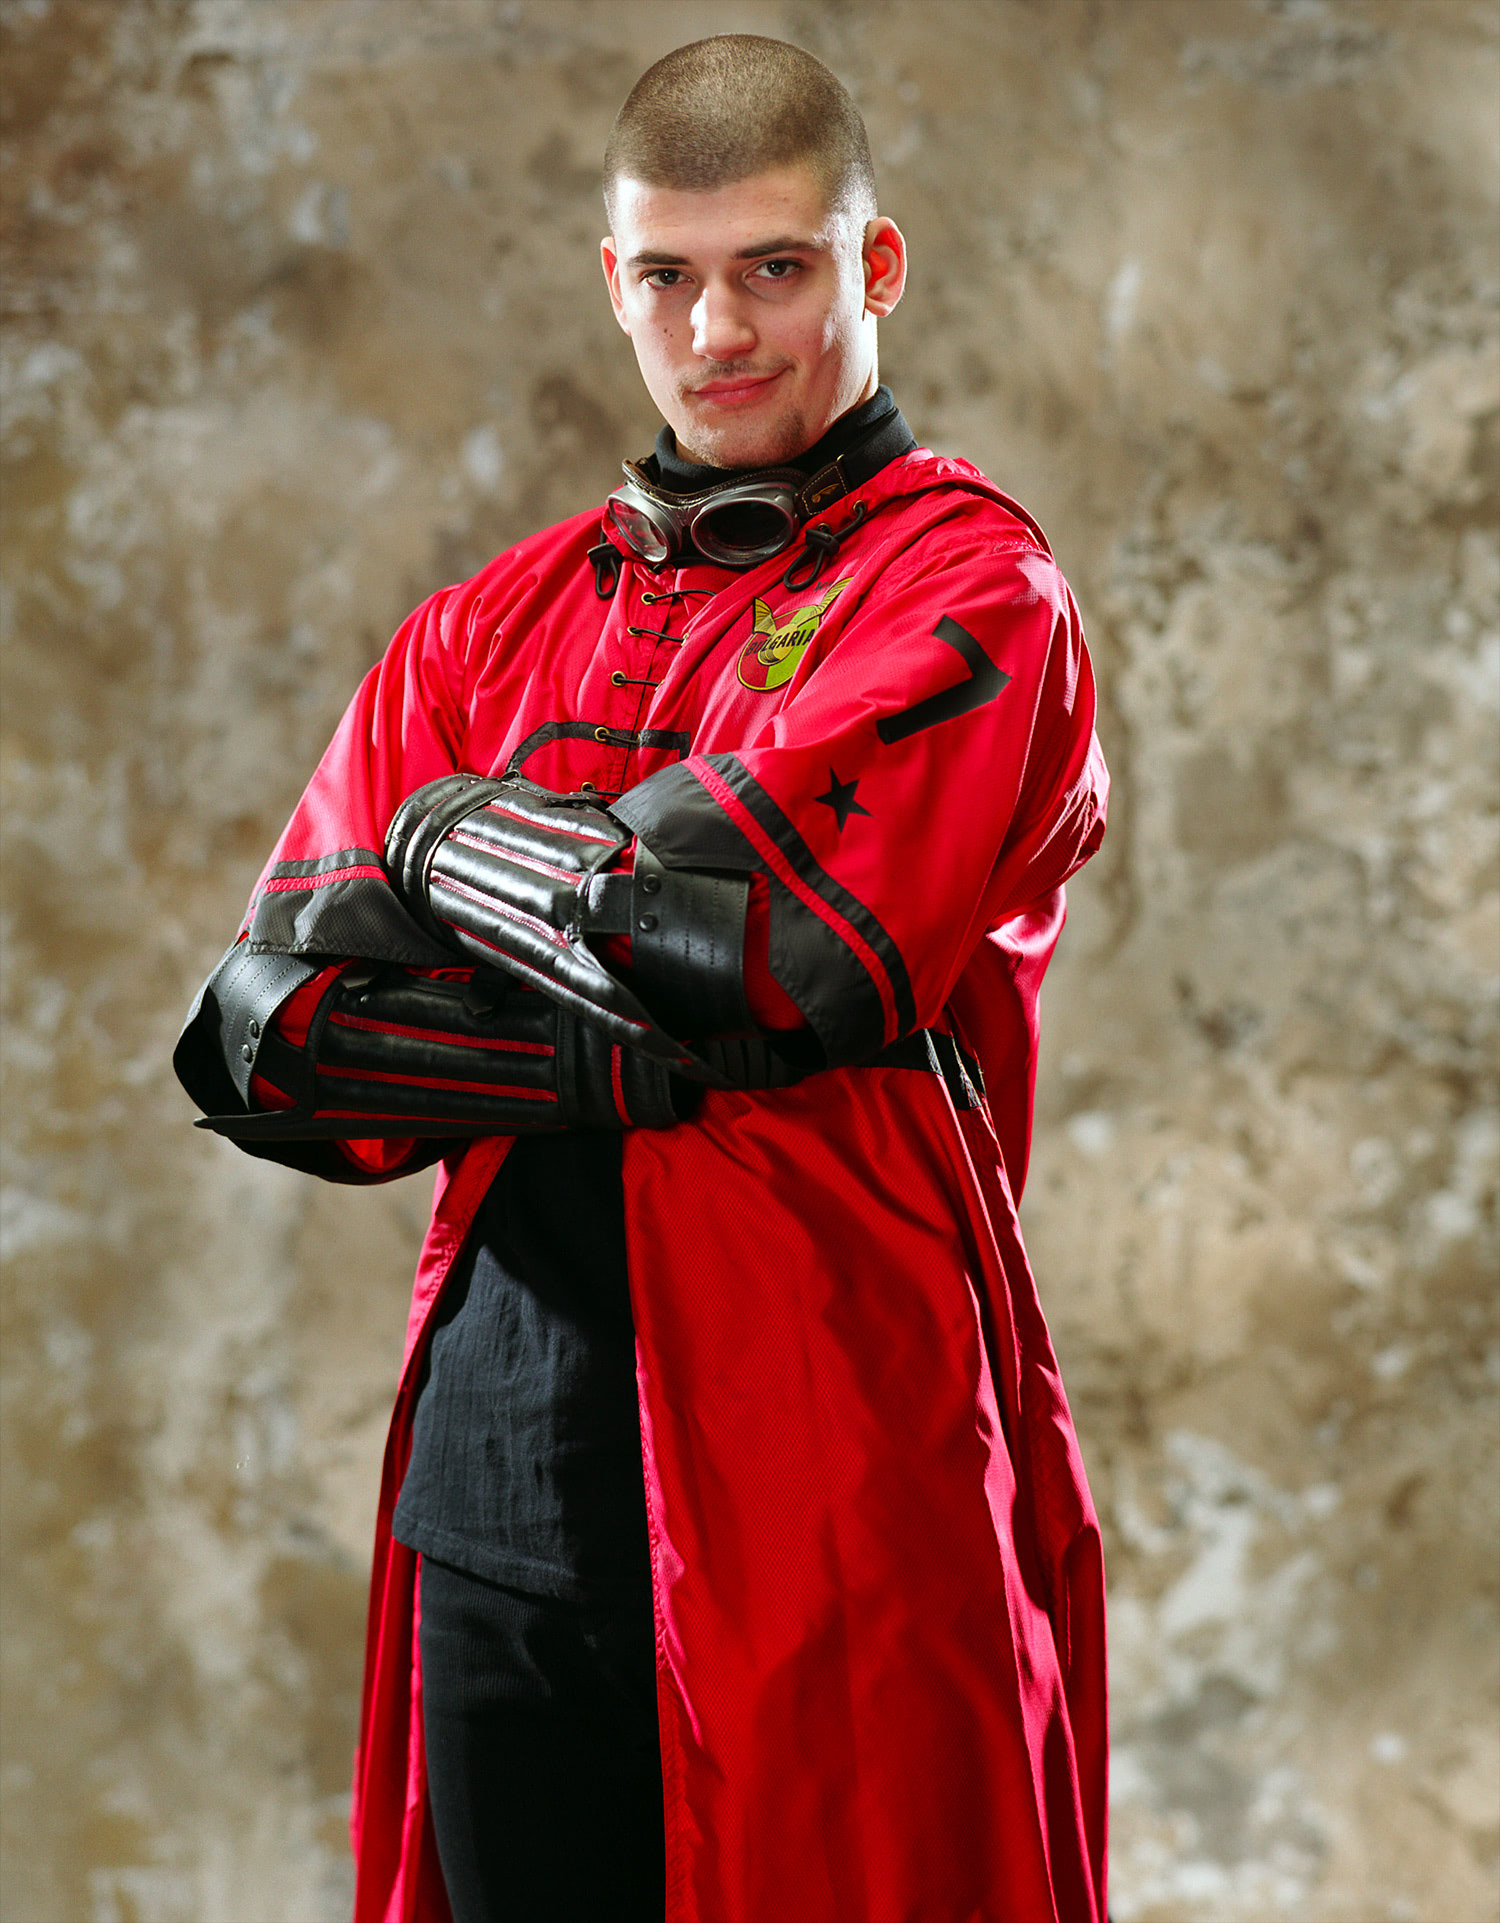 Portrait of Viktor Krum in Quidditch robes